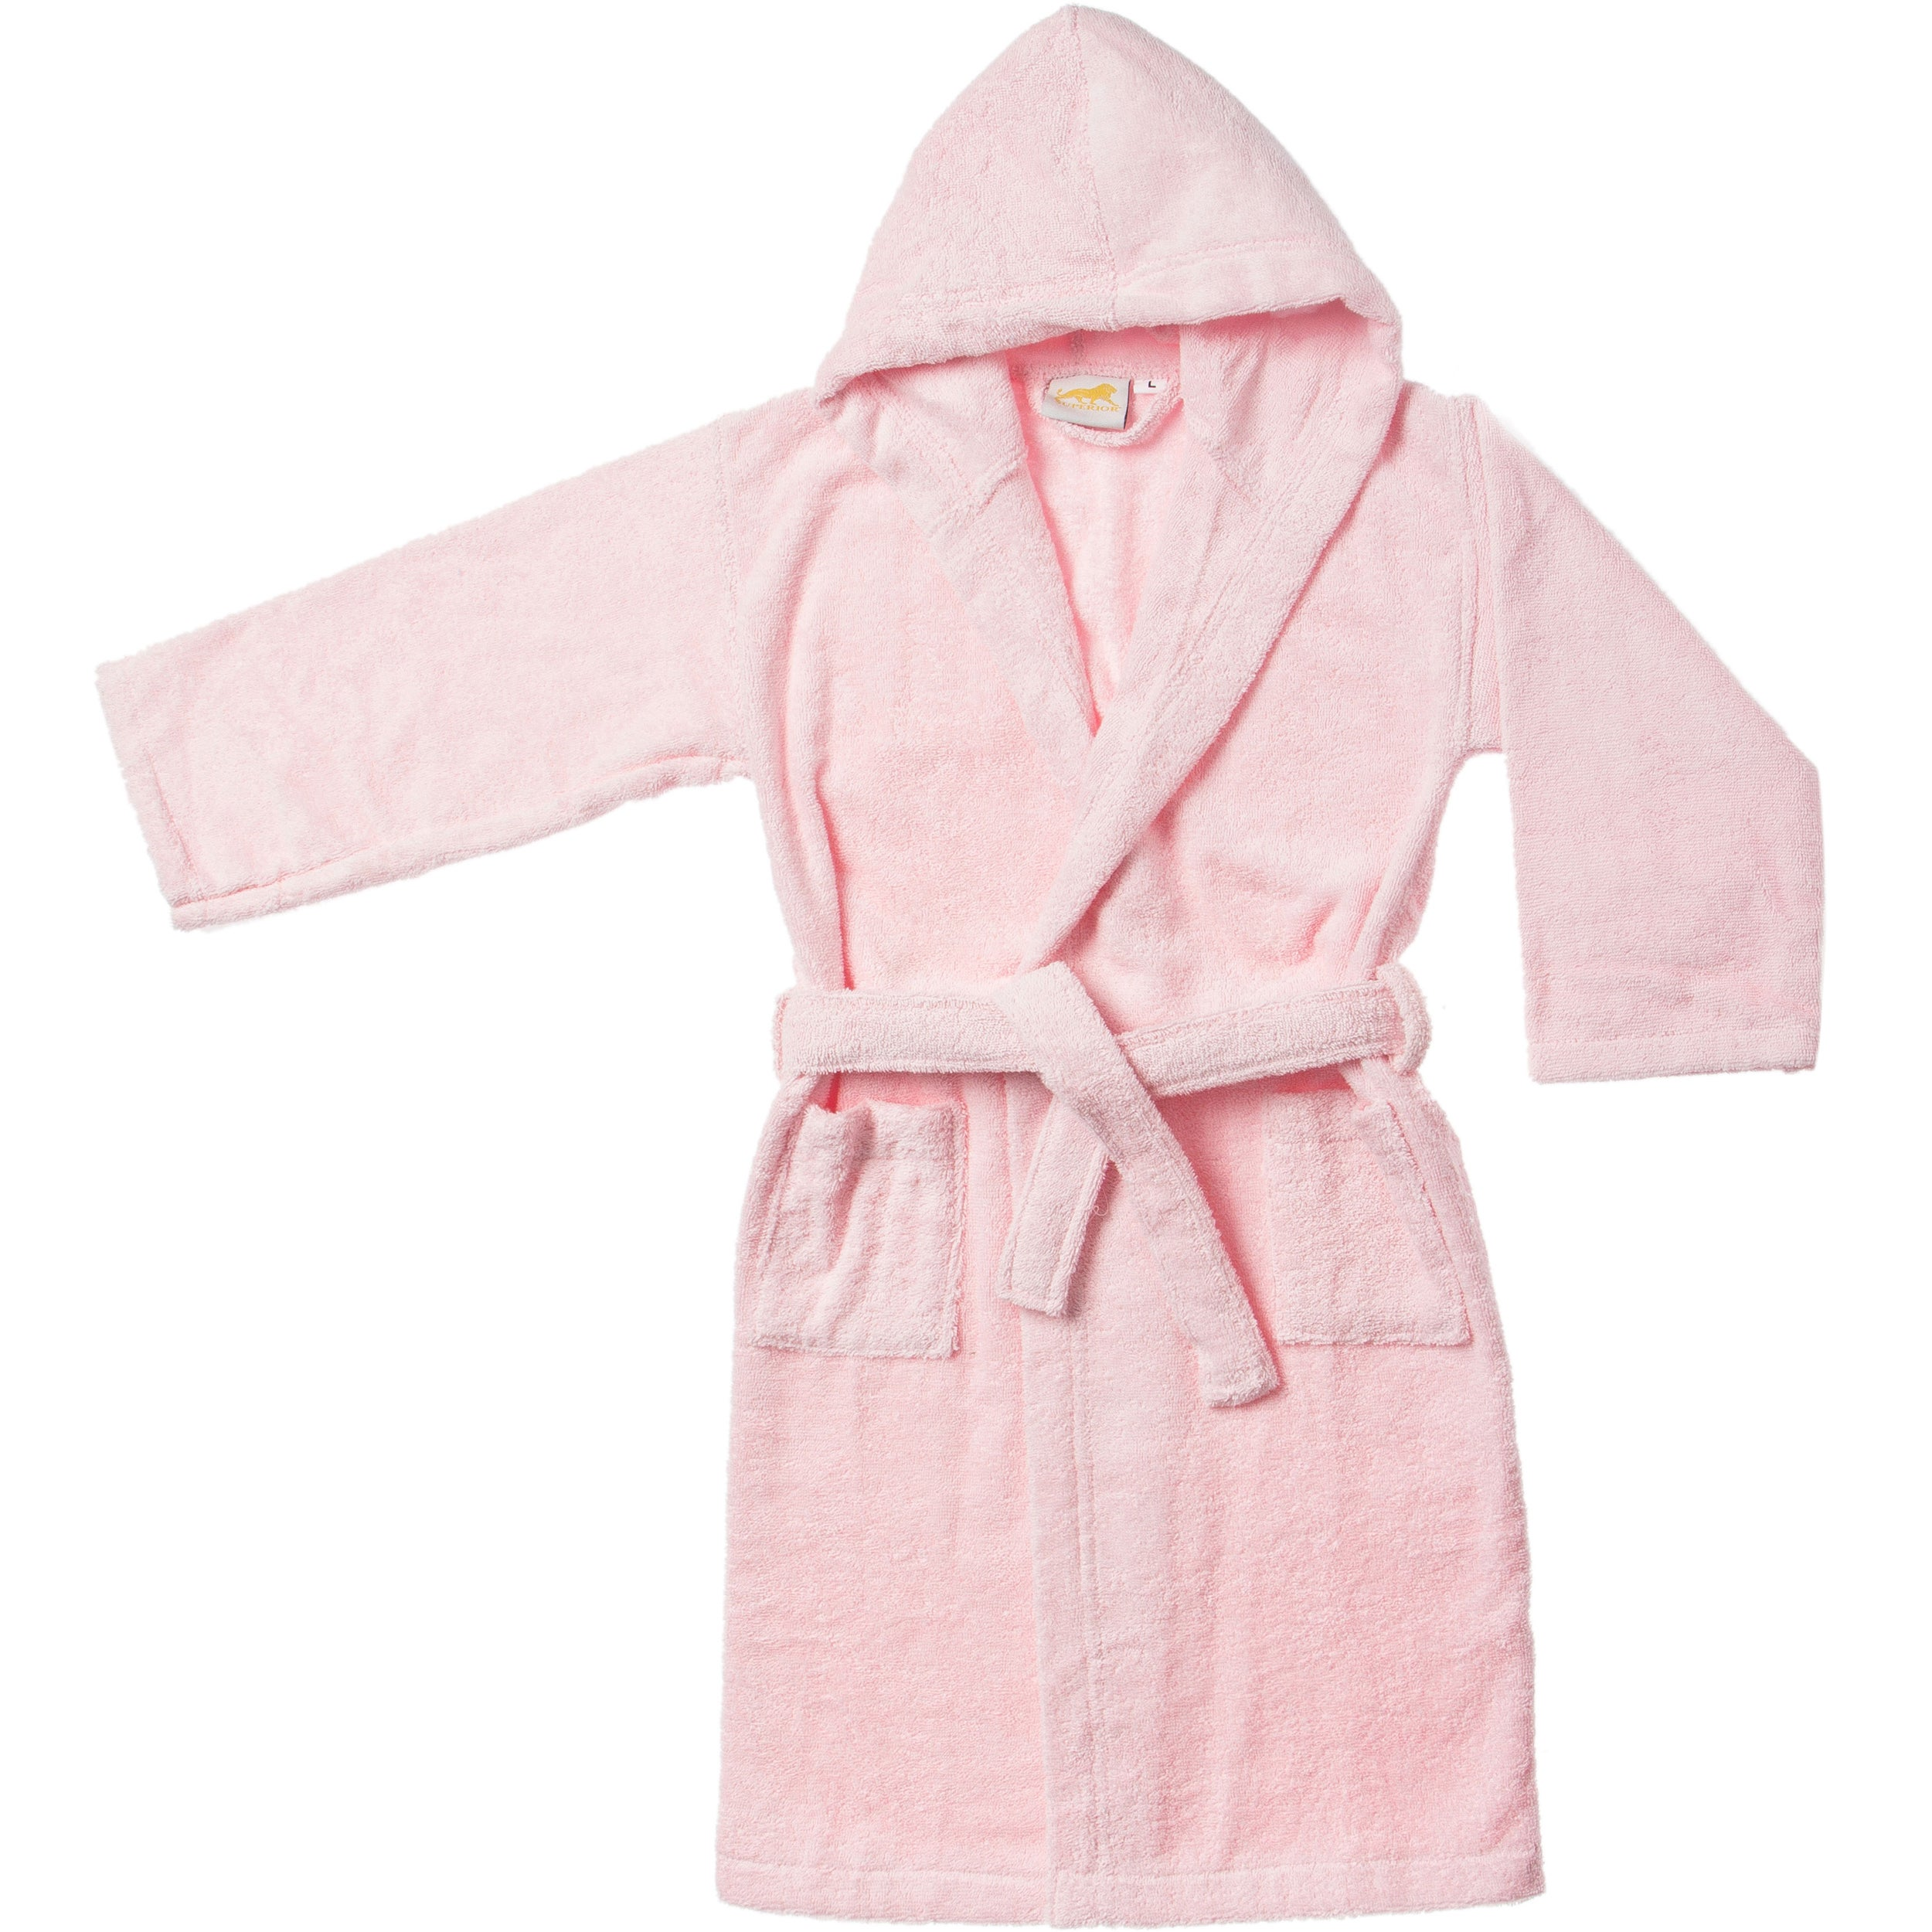 Superior Collection Luxurious Cotton Kids Hooded Bath Robe On Sale Overstock 9370416